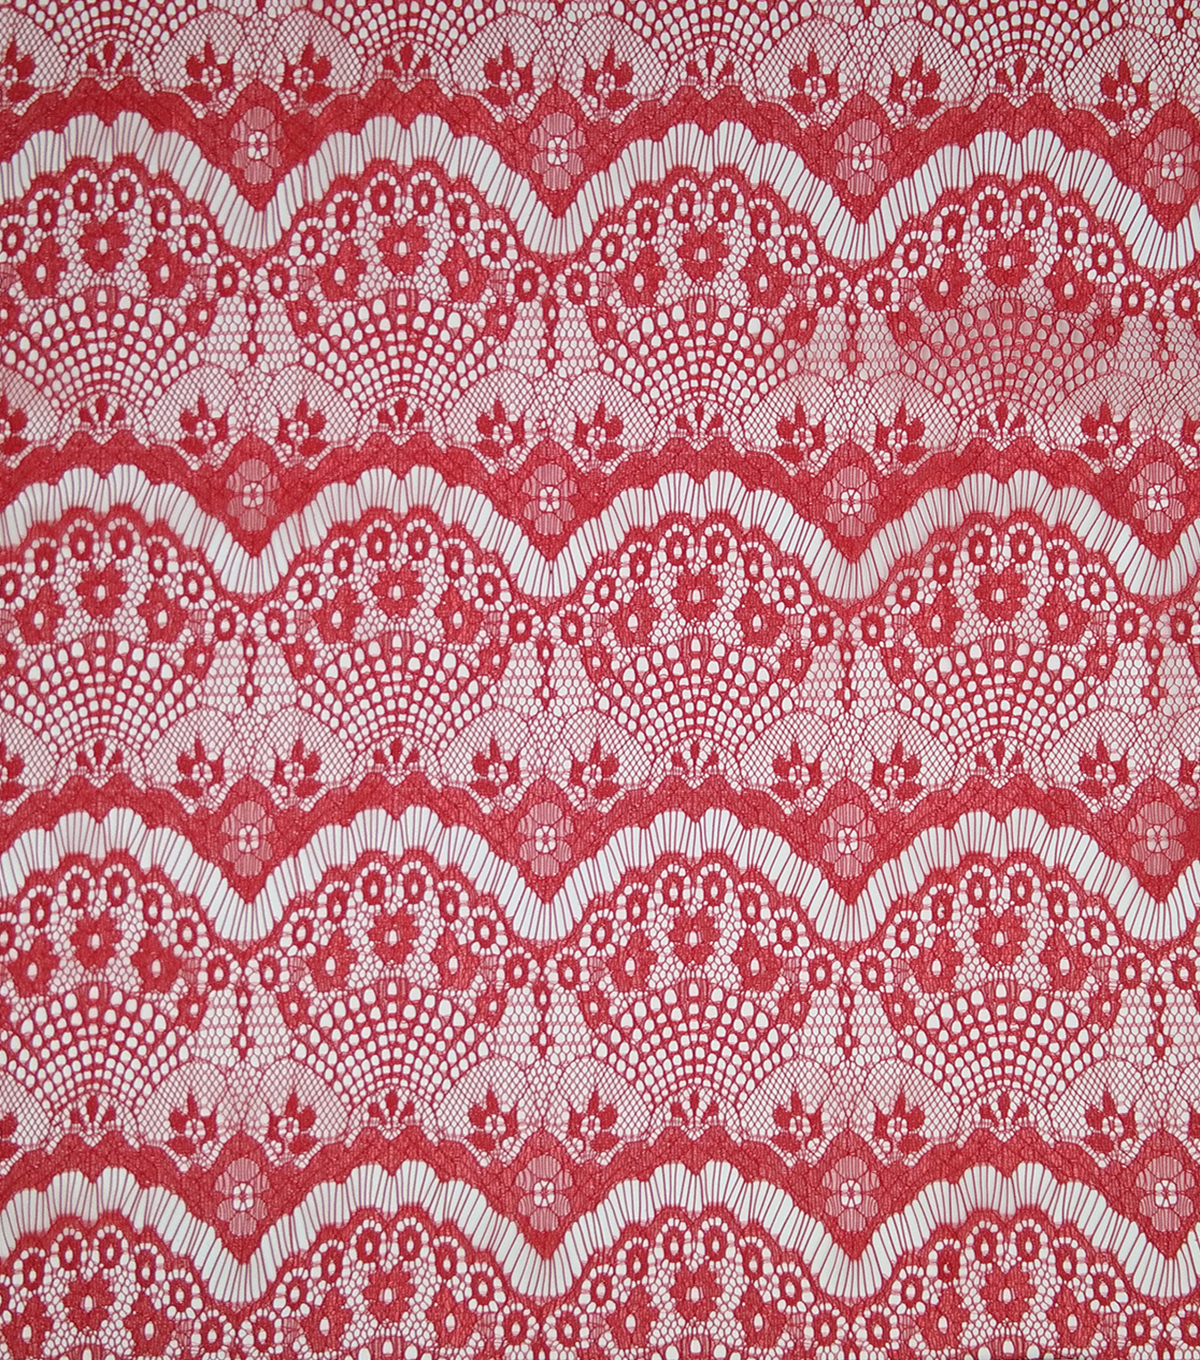 Casa Collection Eyelash Lace Fabric 56\u0022, Tango Red